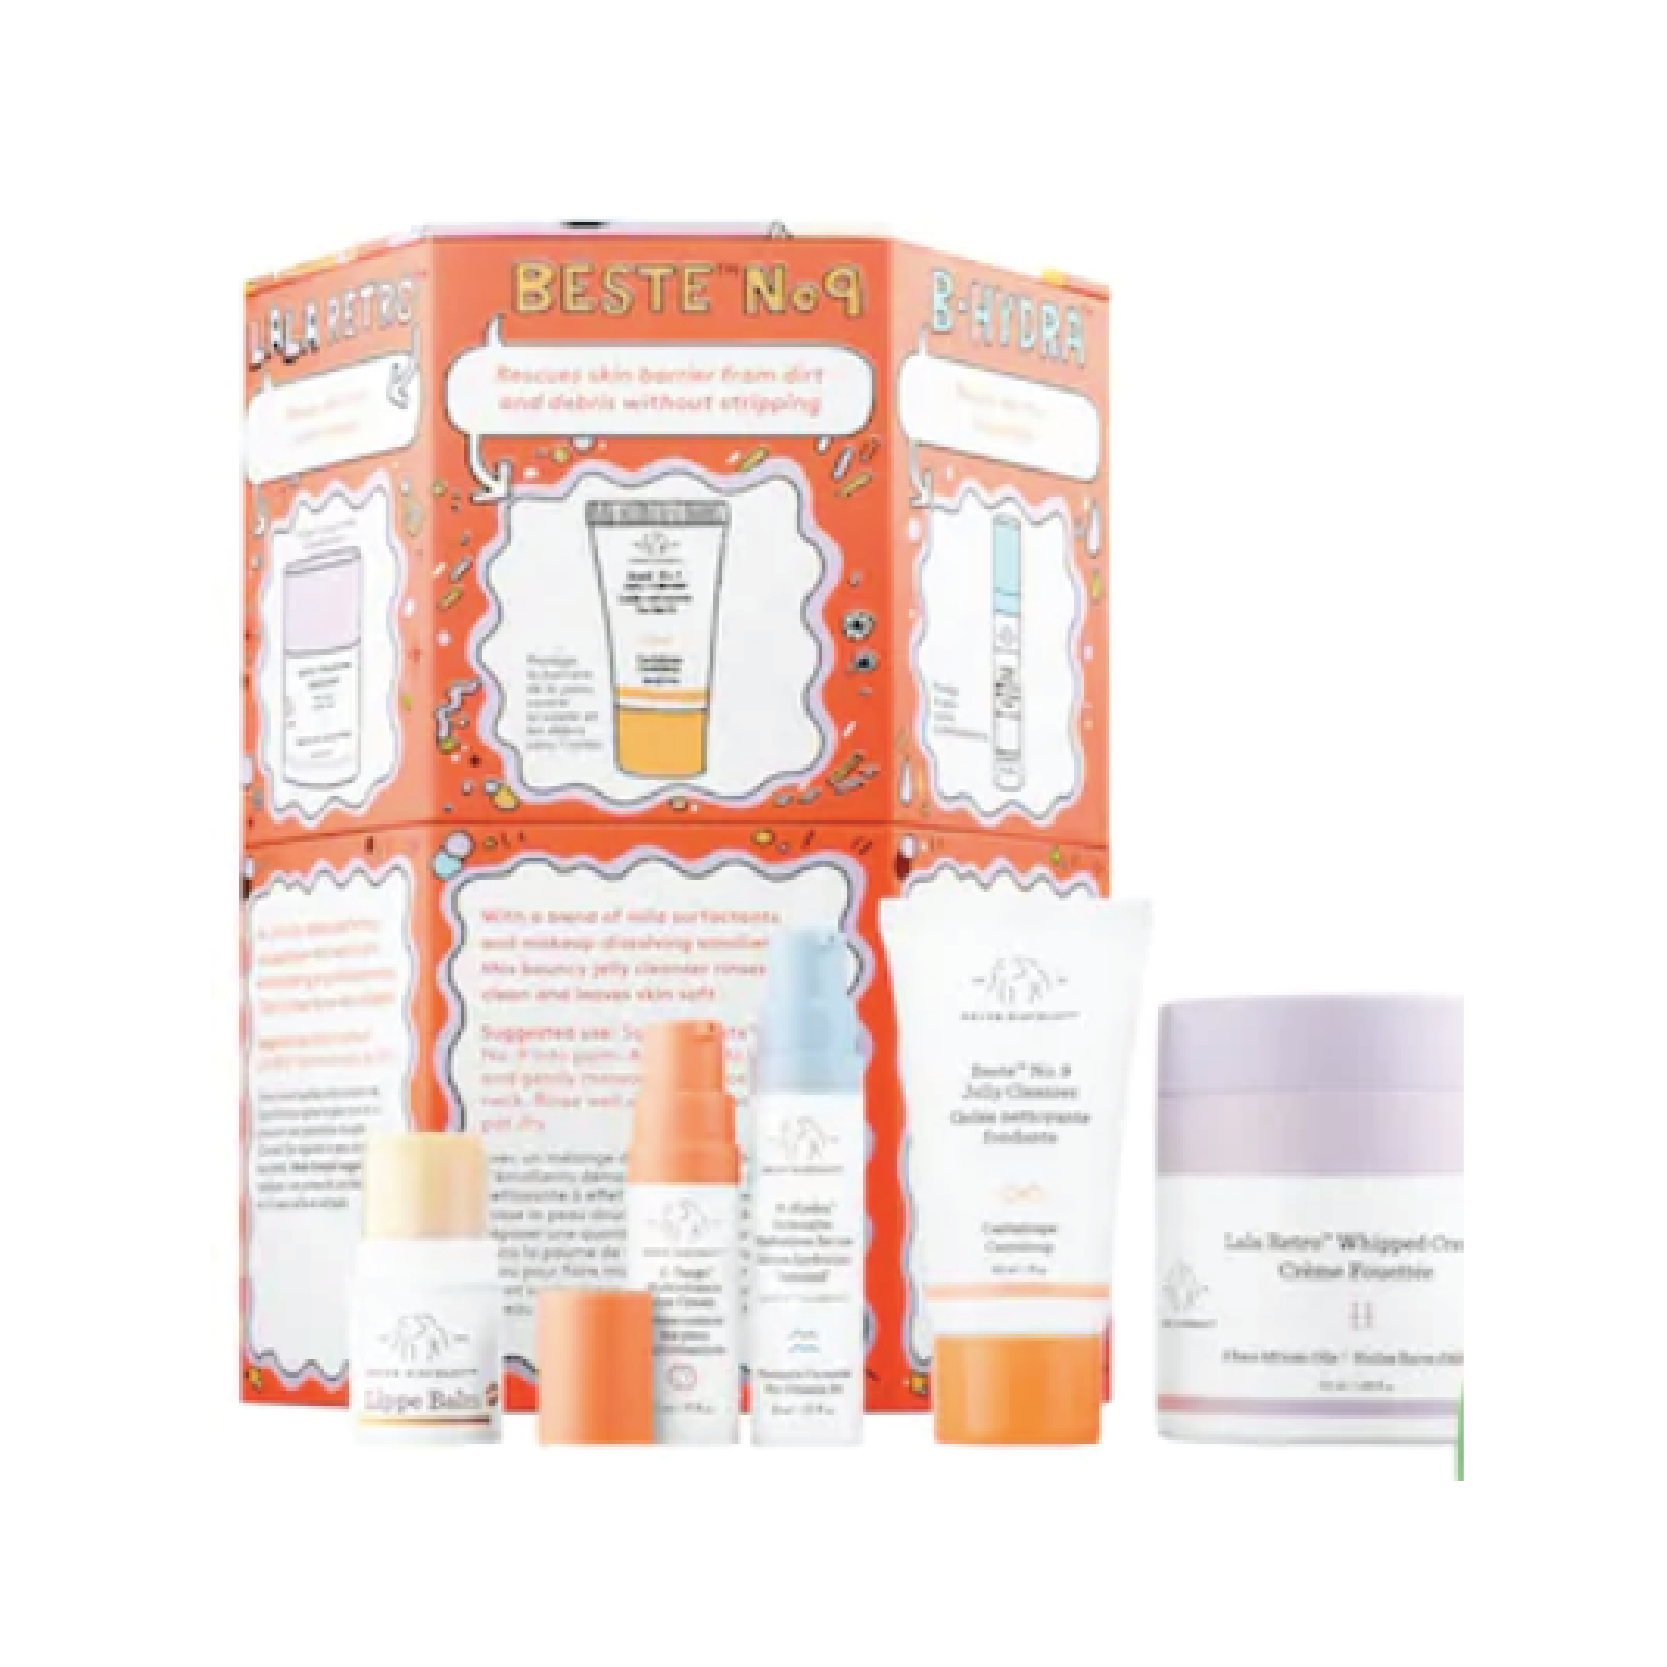 Drunk Elephant Rescue Party Kit - $75 at SephoraDrunk Elephant has some of the most luxe skincare out there, with the most fun name. This set is a great travel set of their best sellers and cult favorites.